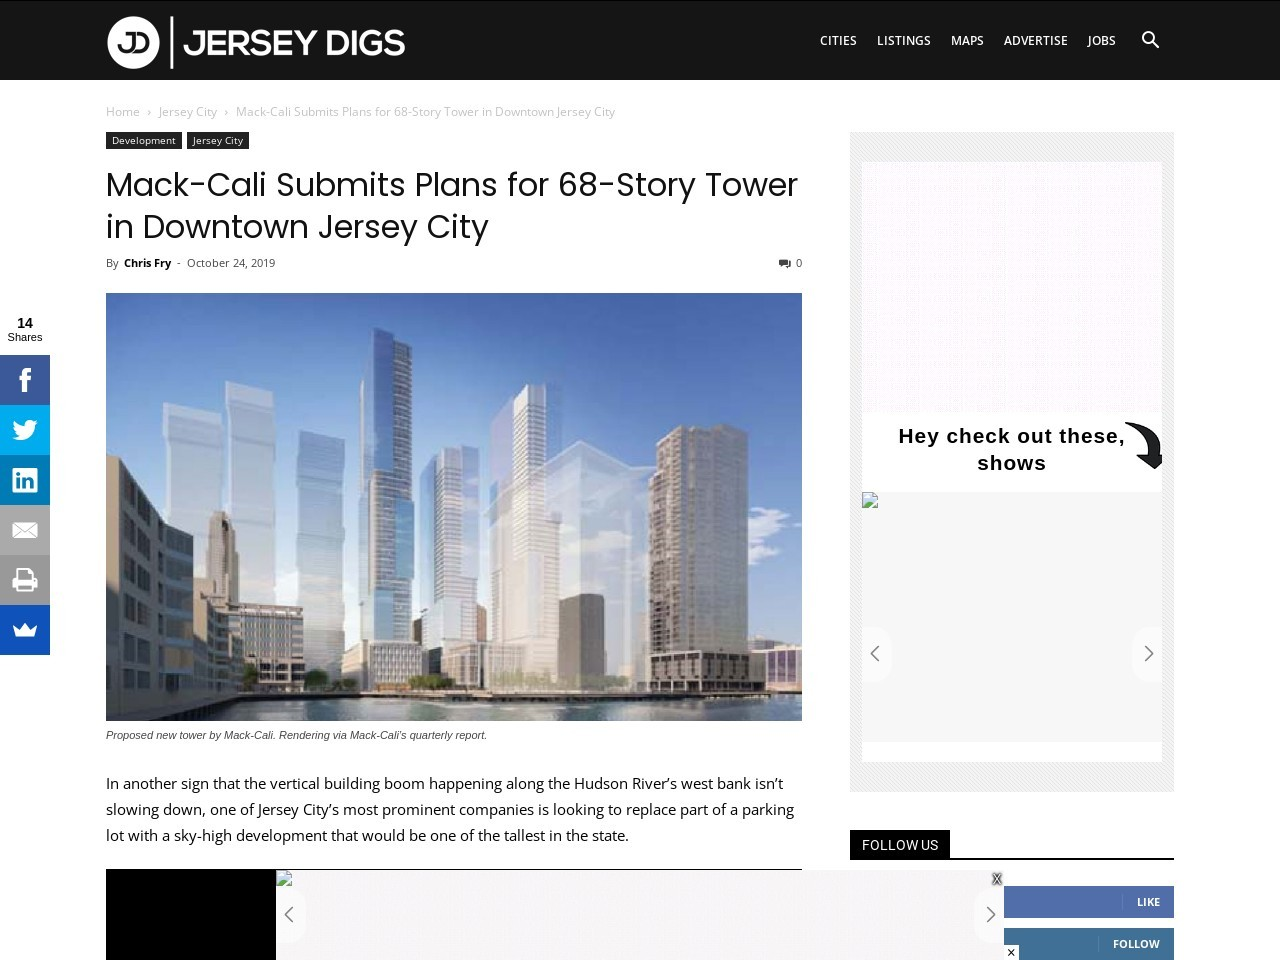 Mack-Cali Submits Plans for 68-Story Tower in Downtown Jersey City